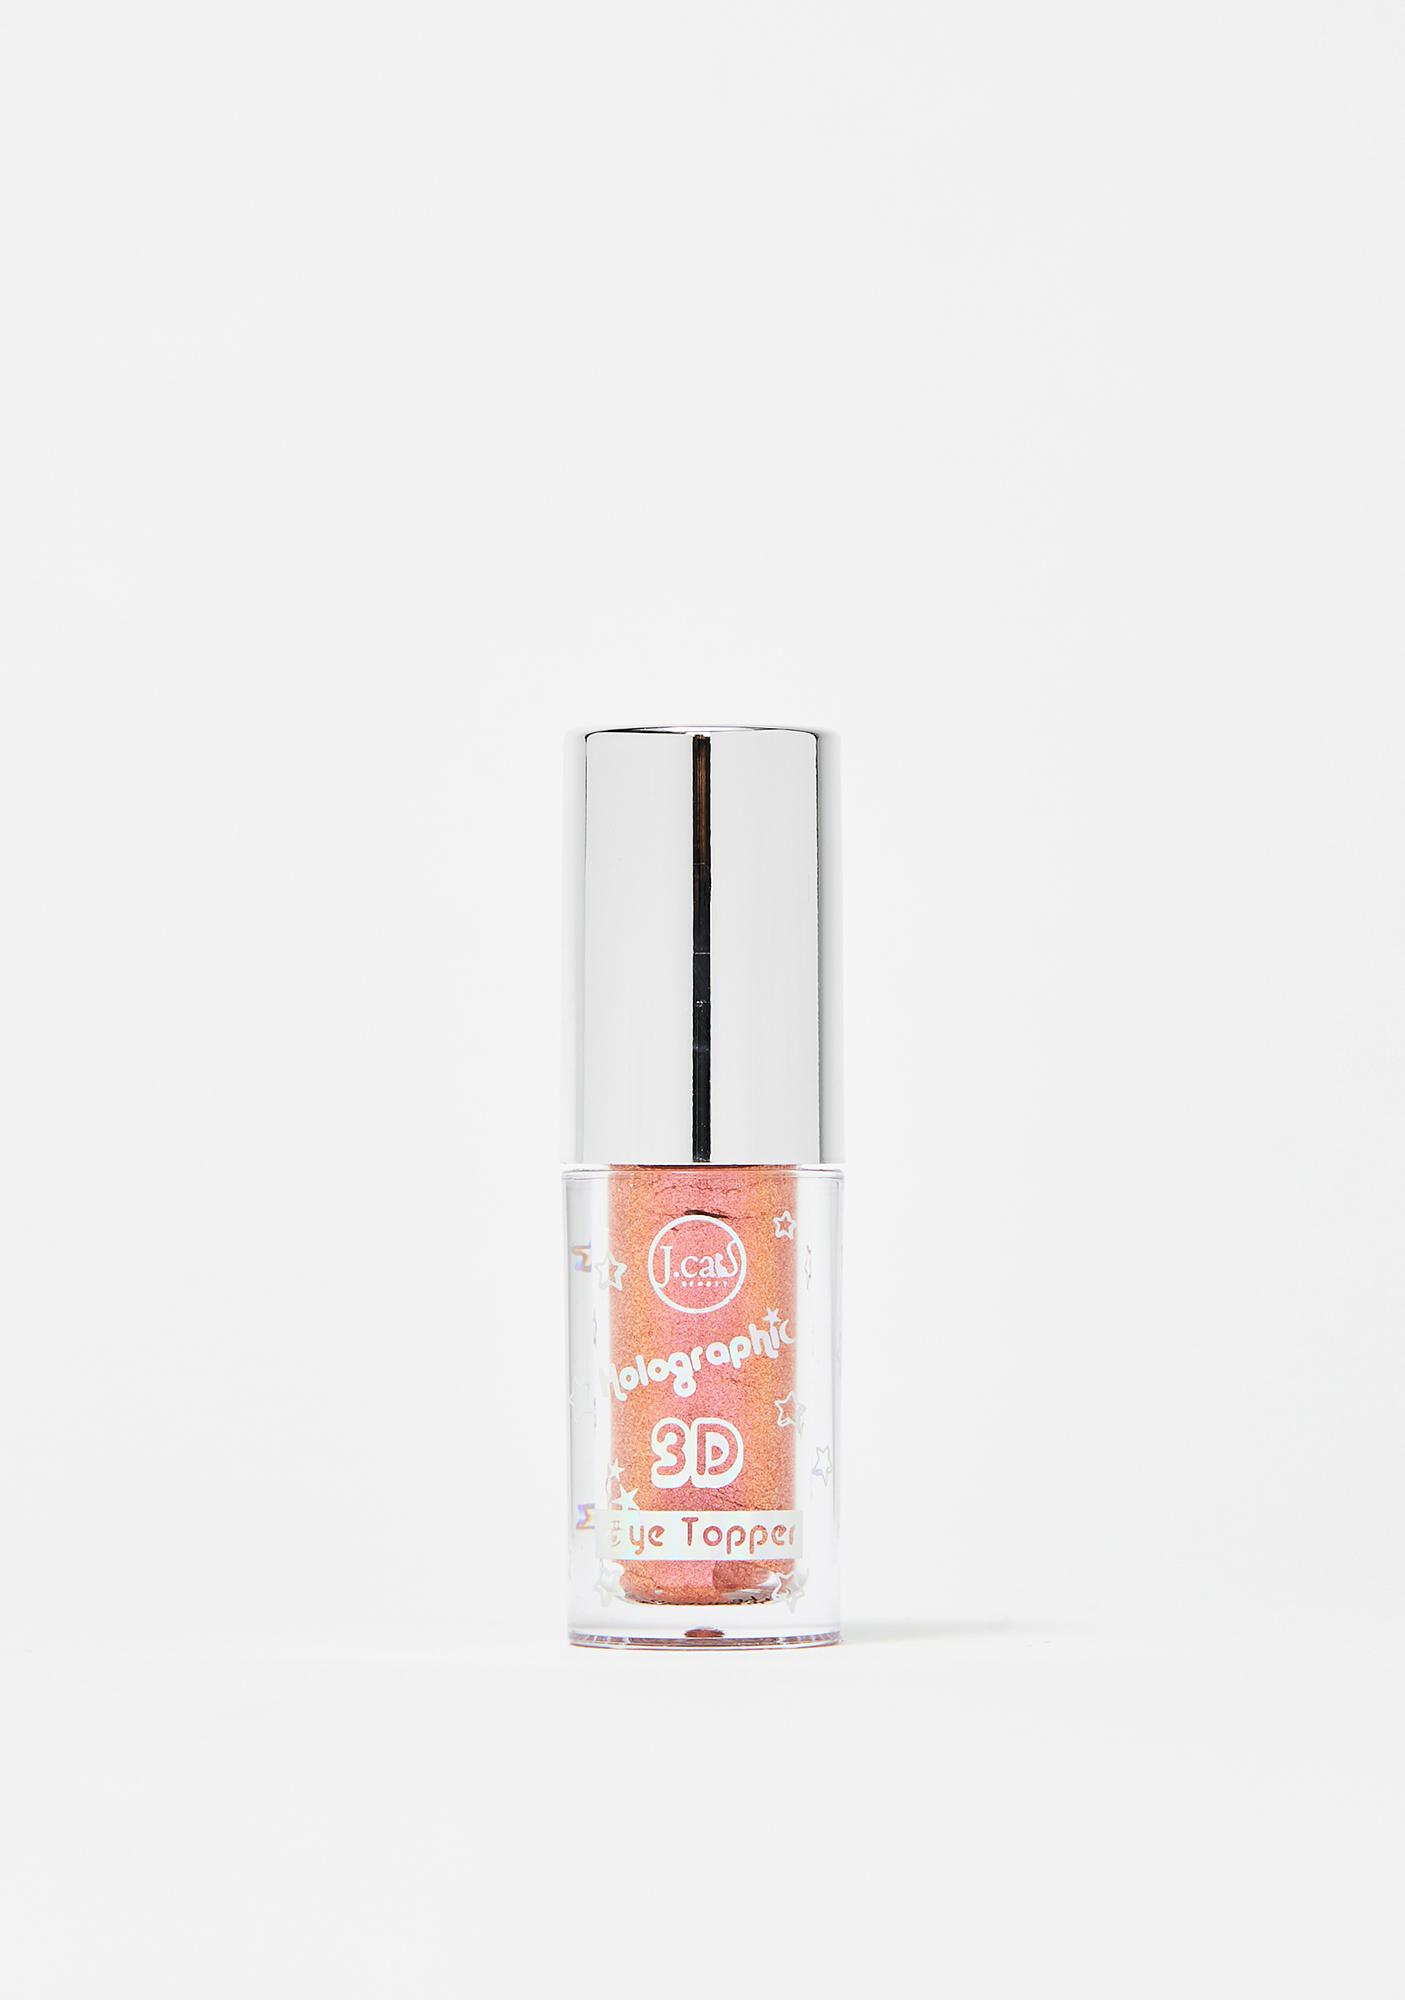 J. Cat Beauty Pinch Me Peachy Holographic 3D Eye Topper